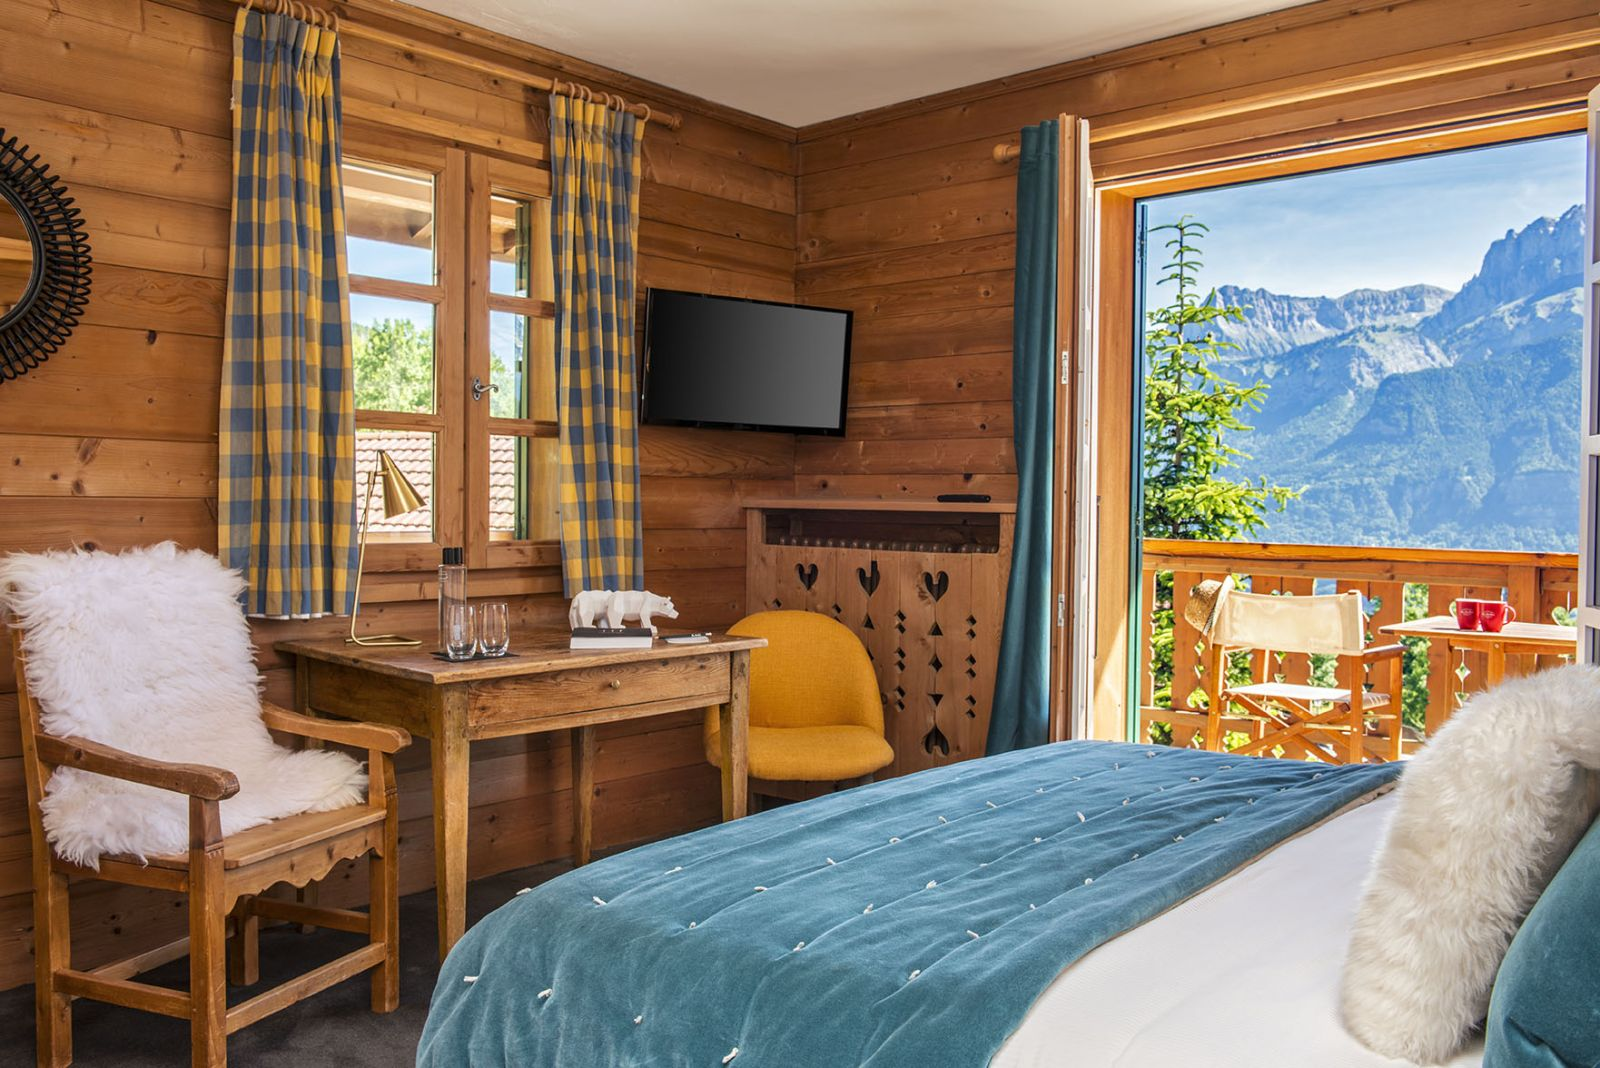 481/Photos/Living_Hotels/Les_Roches/hotel-les-roches-chambre-deluxe-vue-mont-blanc-c.jpg